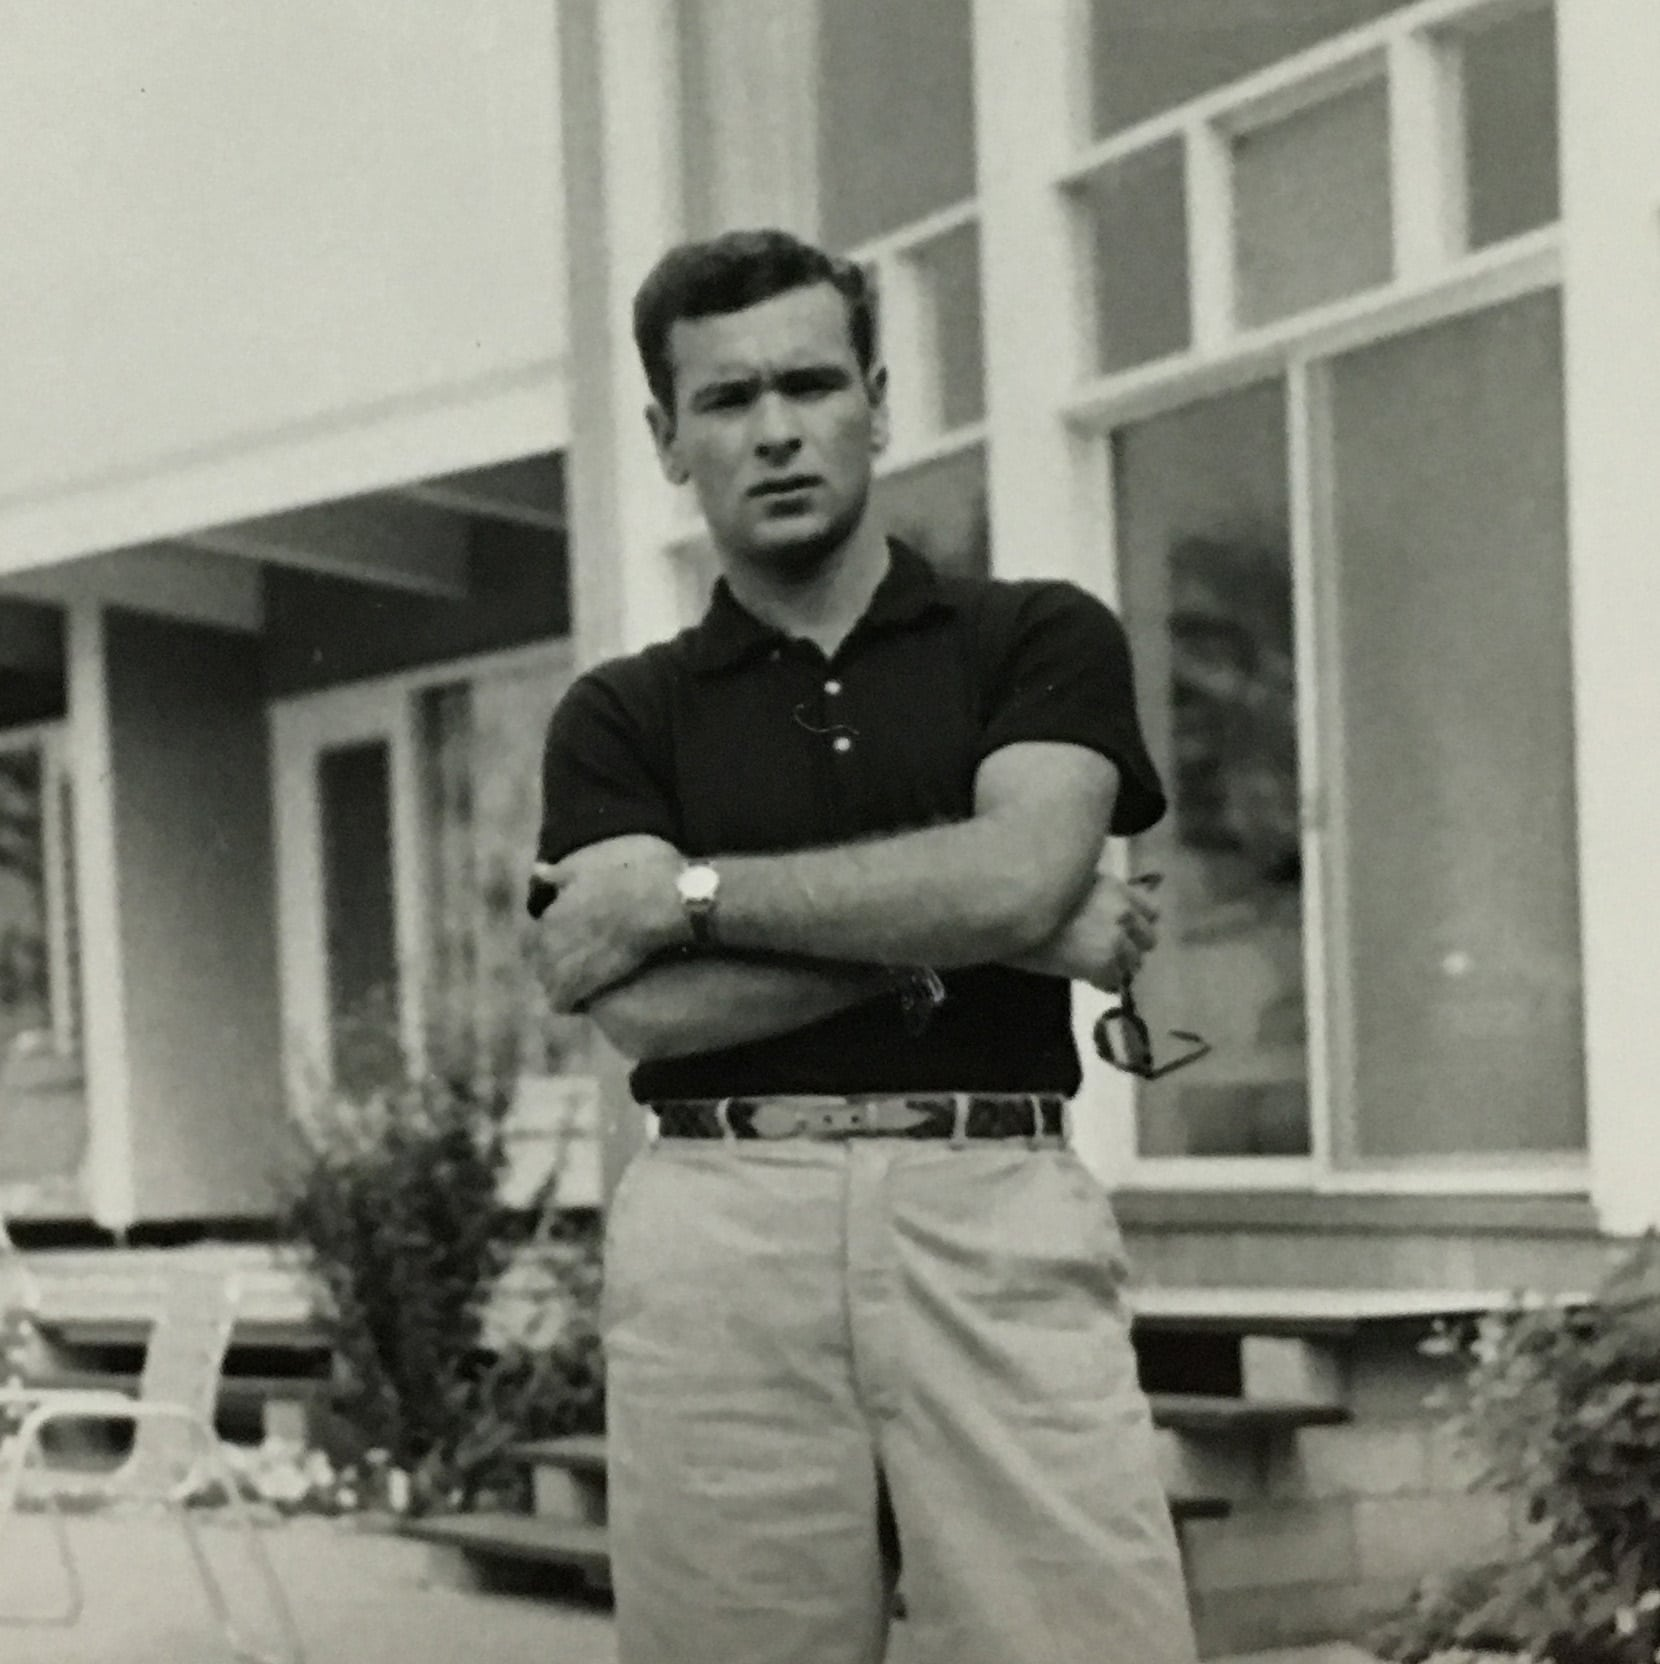 Richard in Palm Beach before his career, 1954